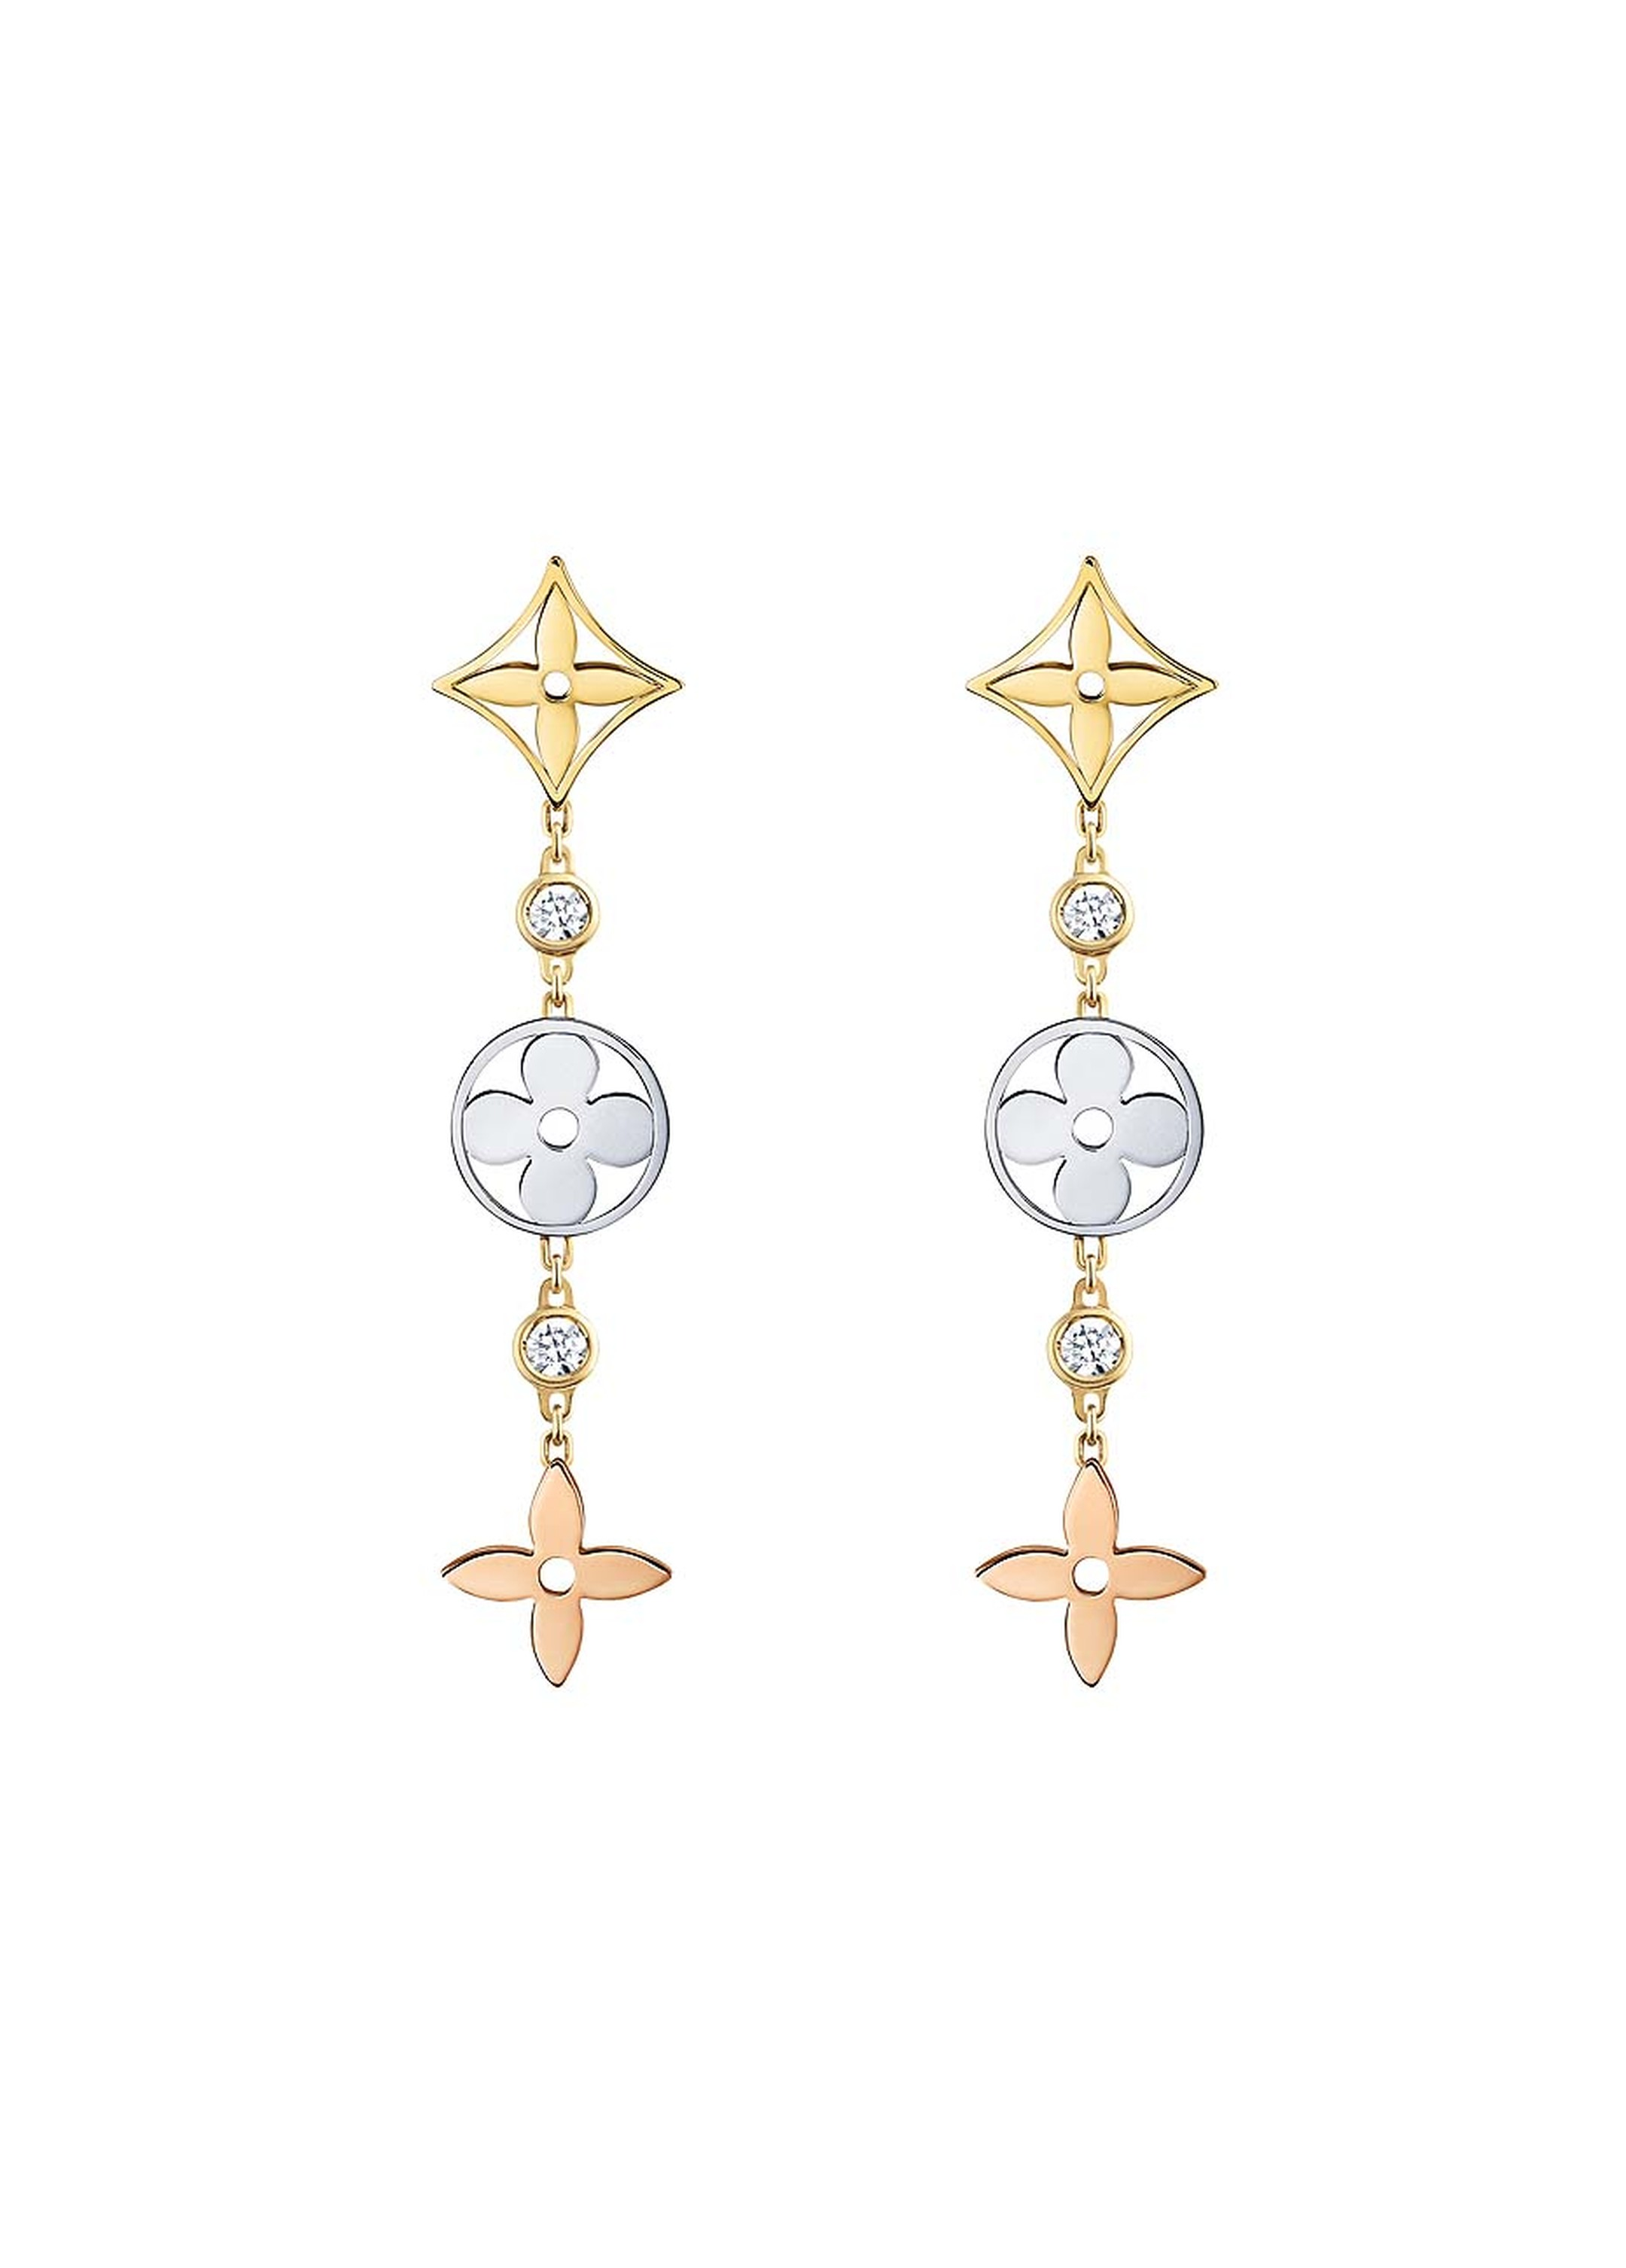 Louis Vuitton earrings in pink, yellow and white gold with diamonds from the new Monogram Idylle collection (£2,110).